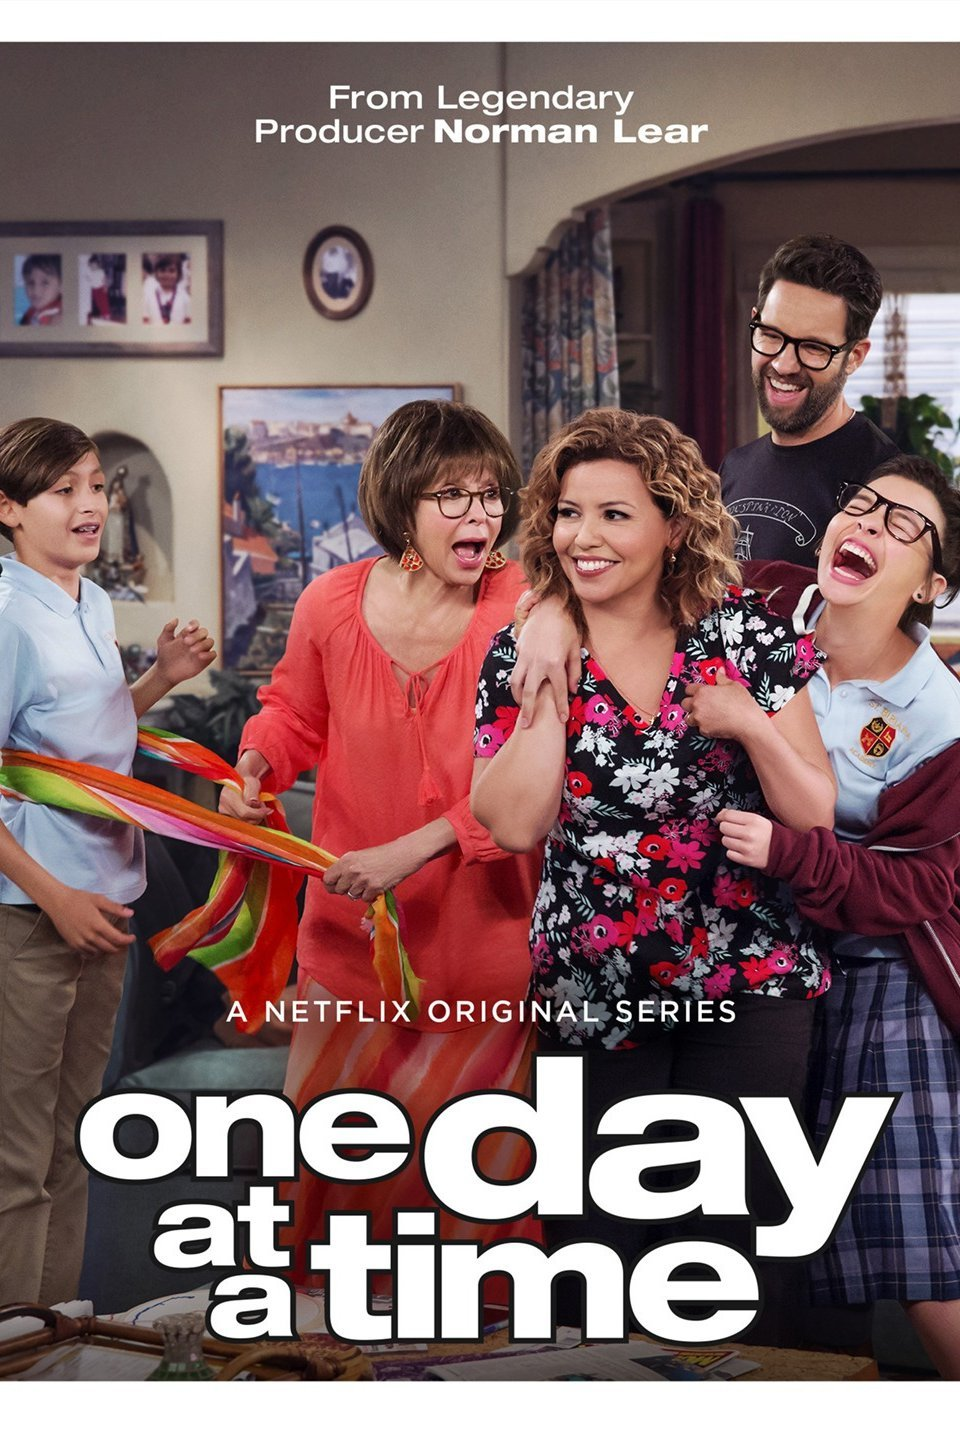 One Day at a Time Season 1 Complete Download 480p WEB-DL